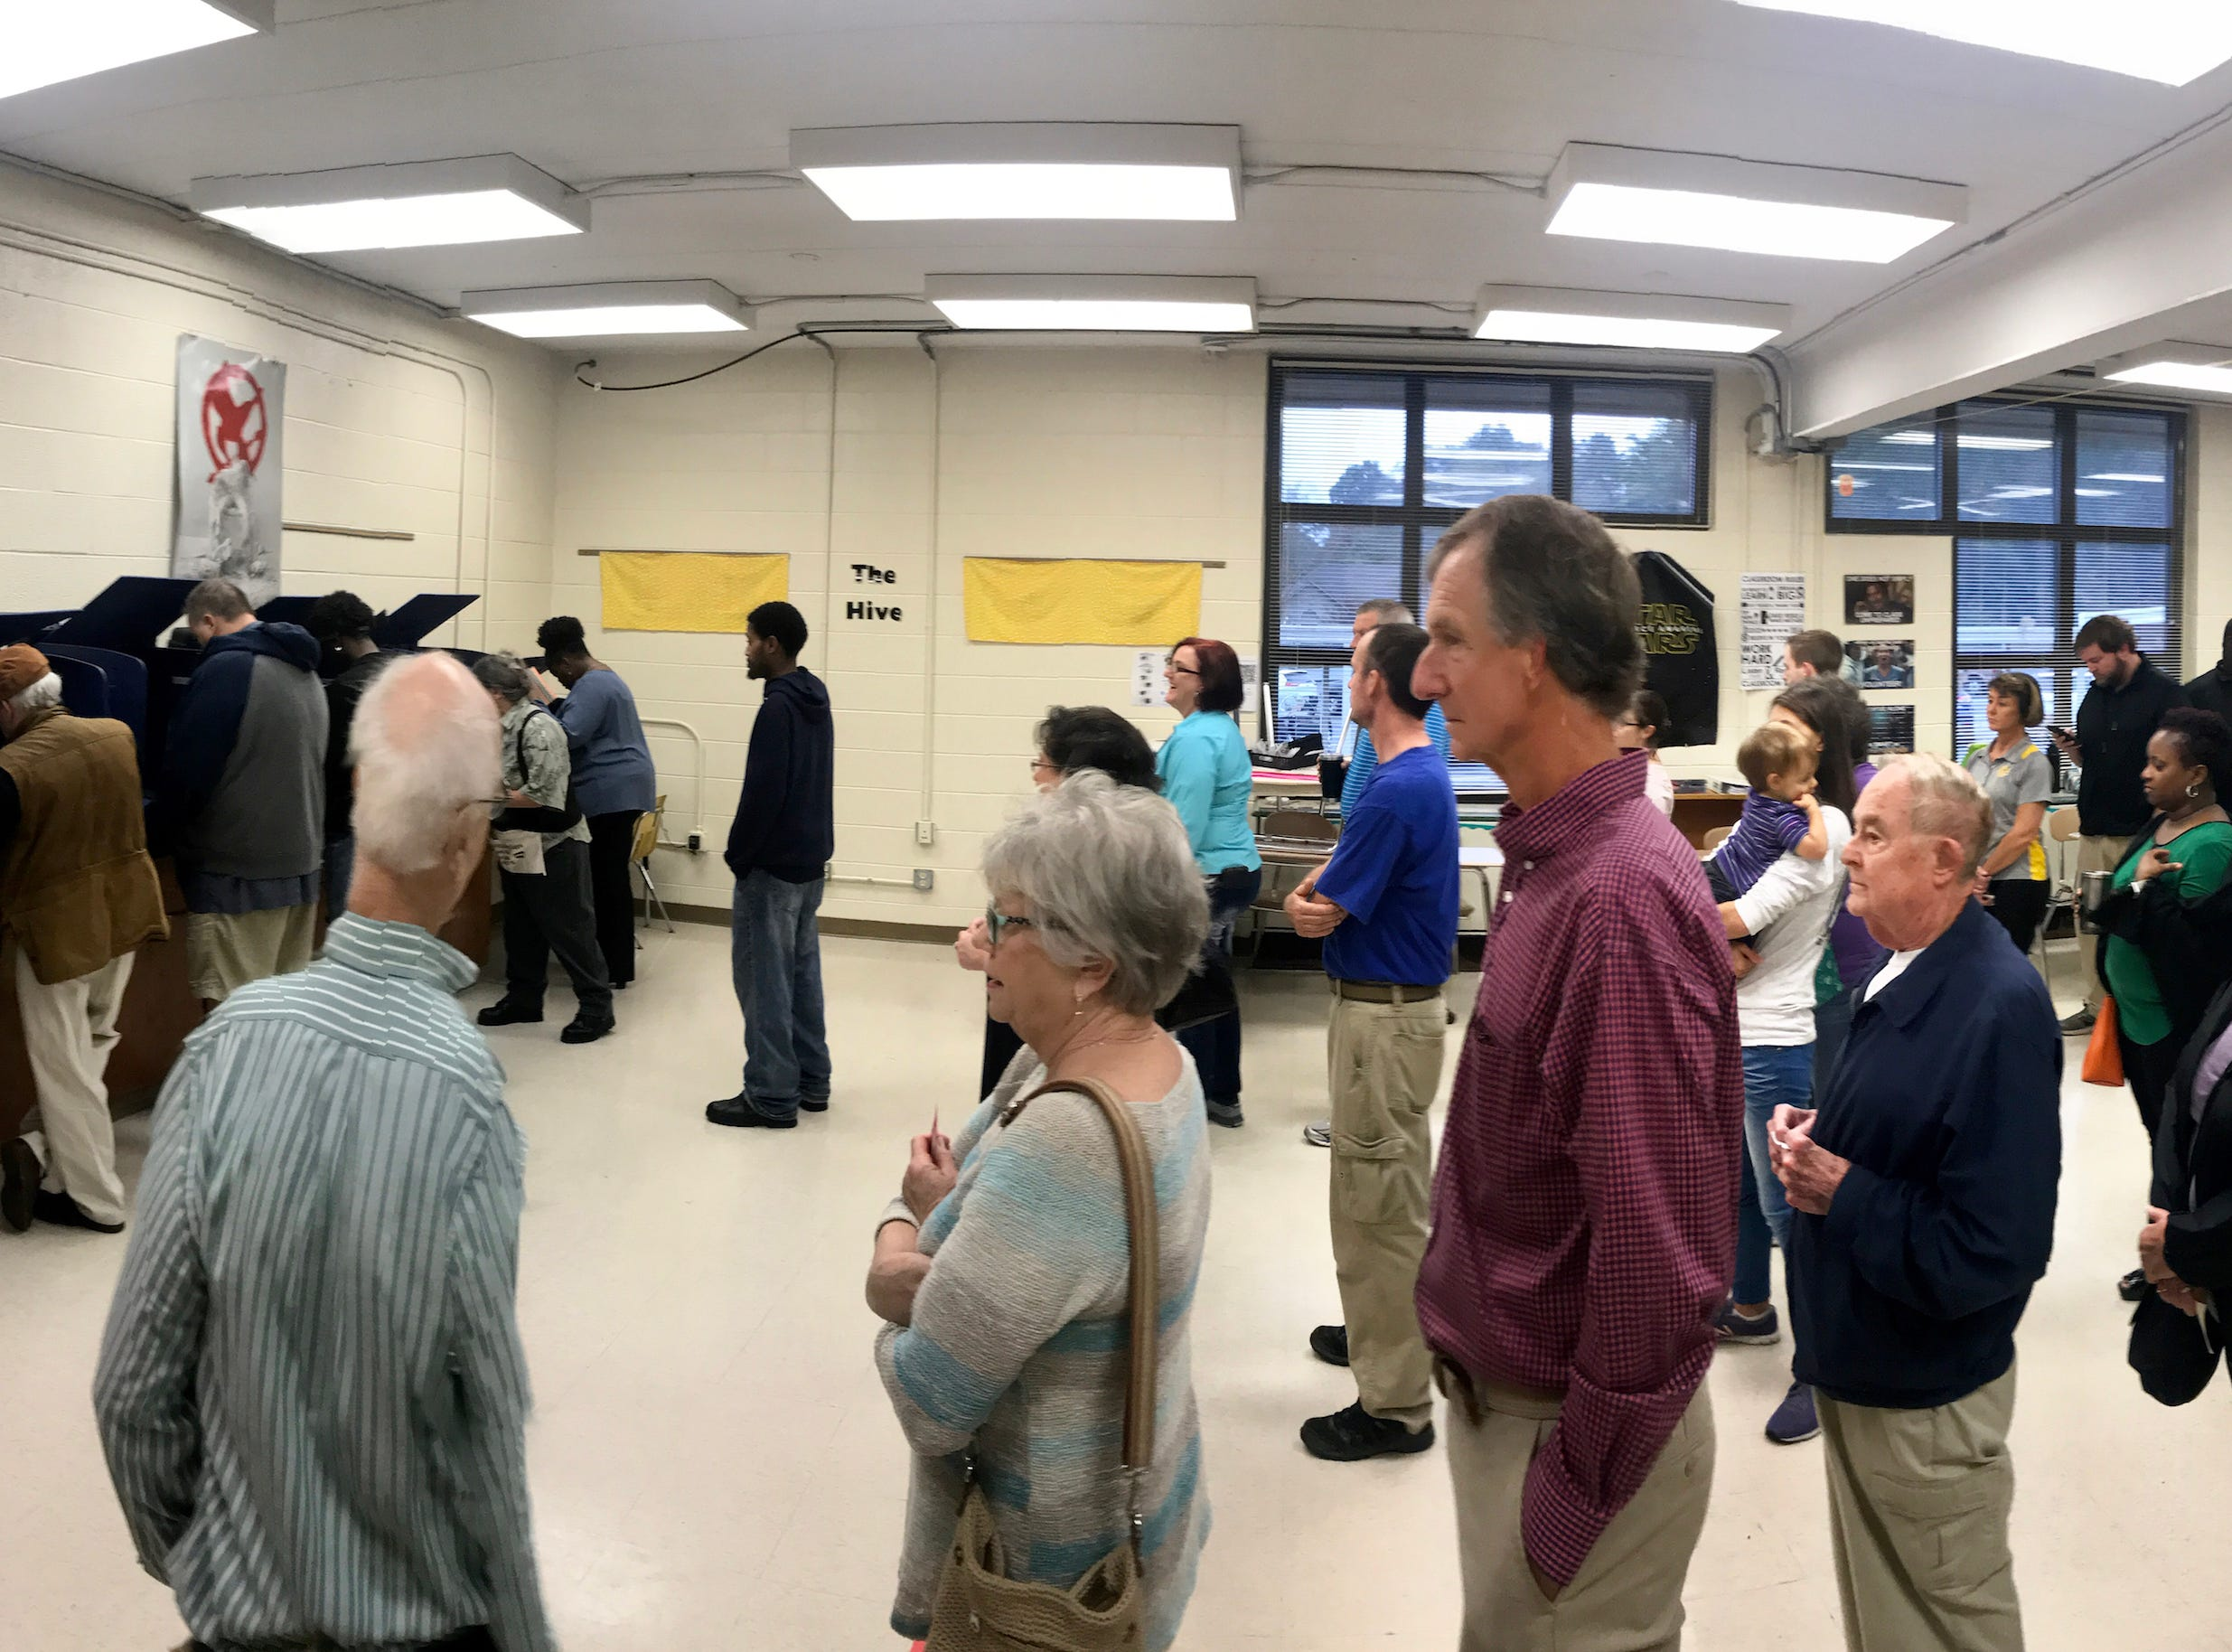 Voters lineup in McCants precinct in Anderson County on Tuesday, Nov. 6, 2018.